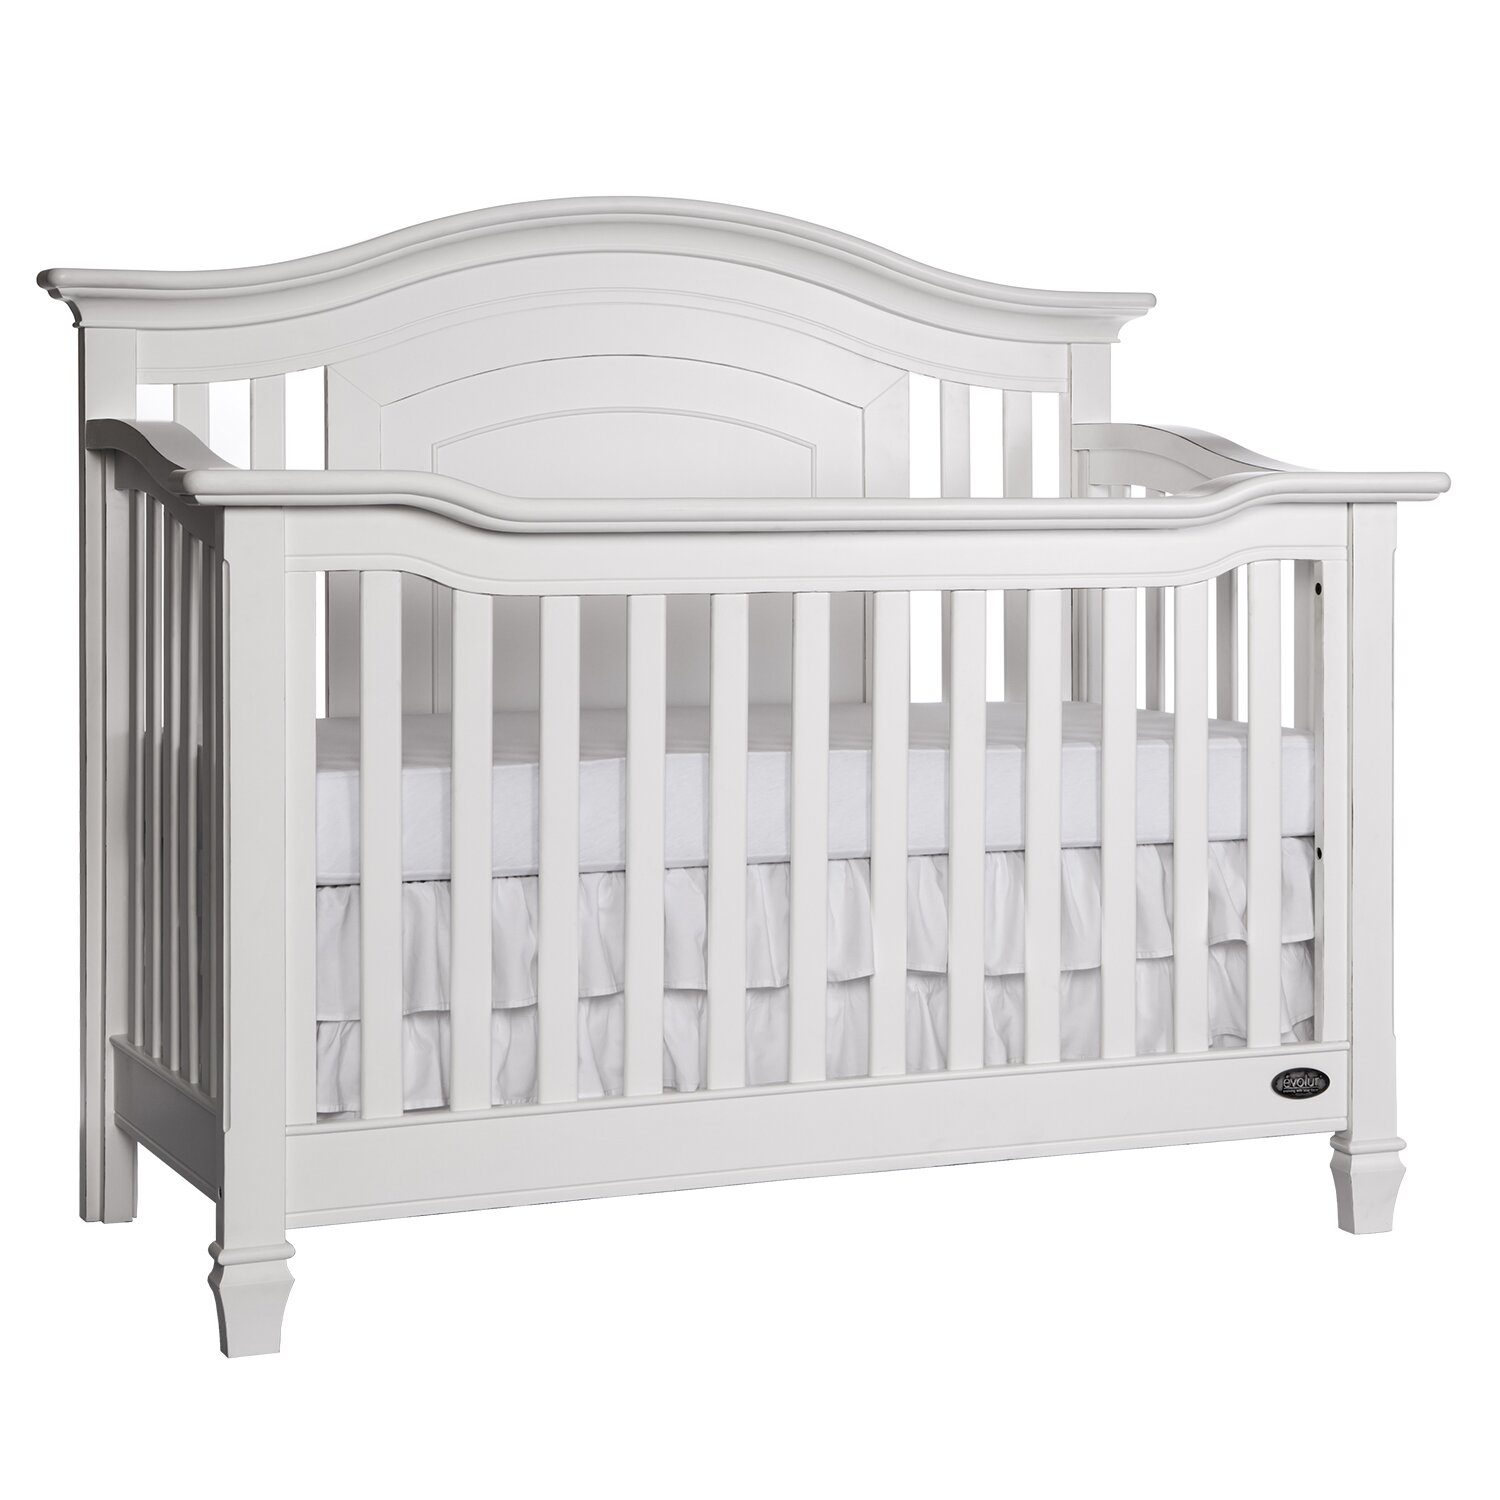 Baby cribs regulations canada - Evolur Fairbanks 5 In 1 Crib